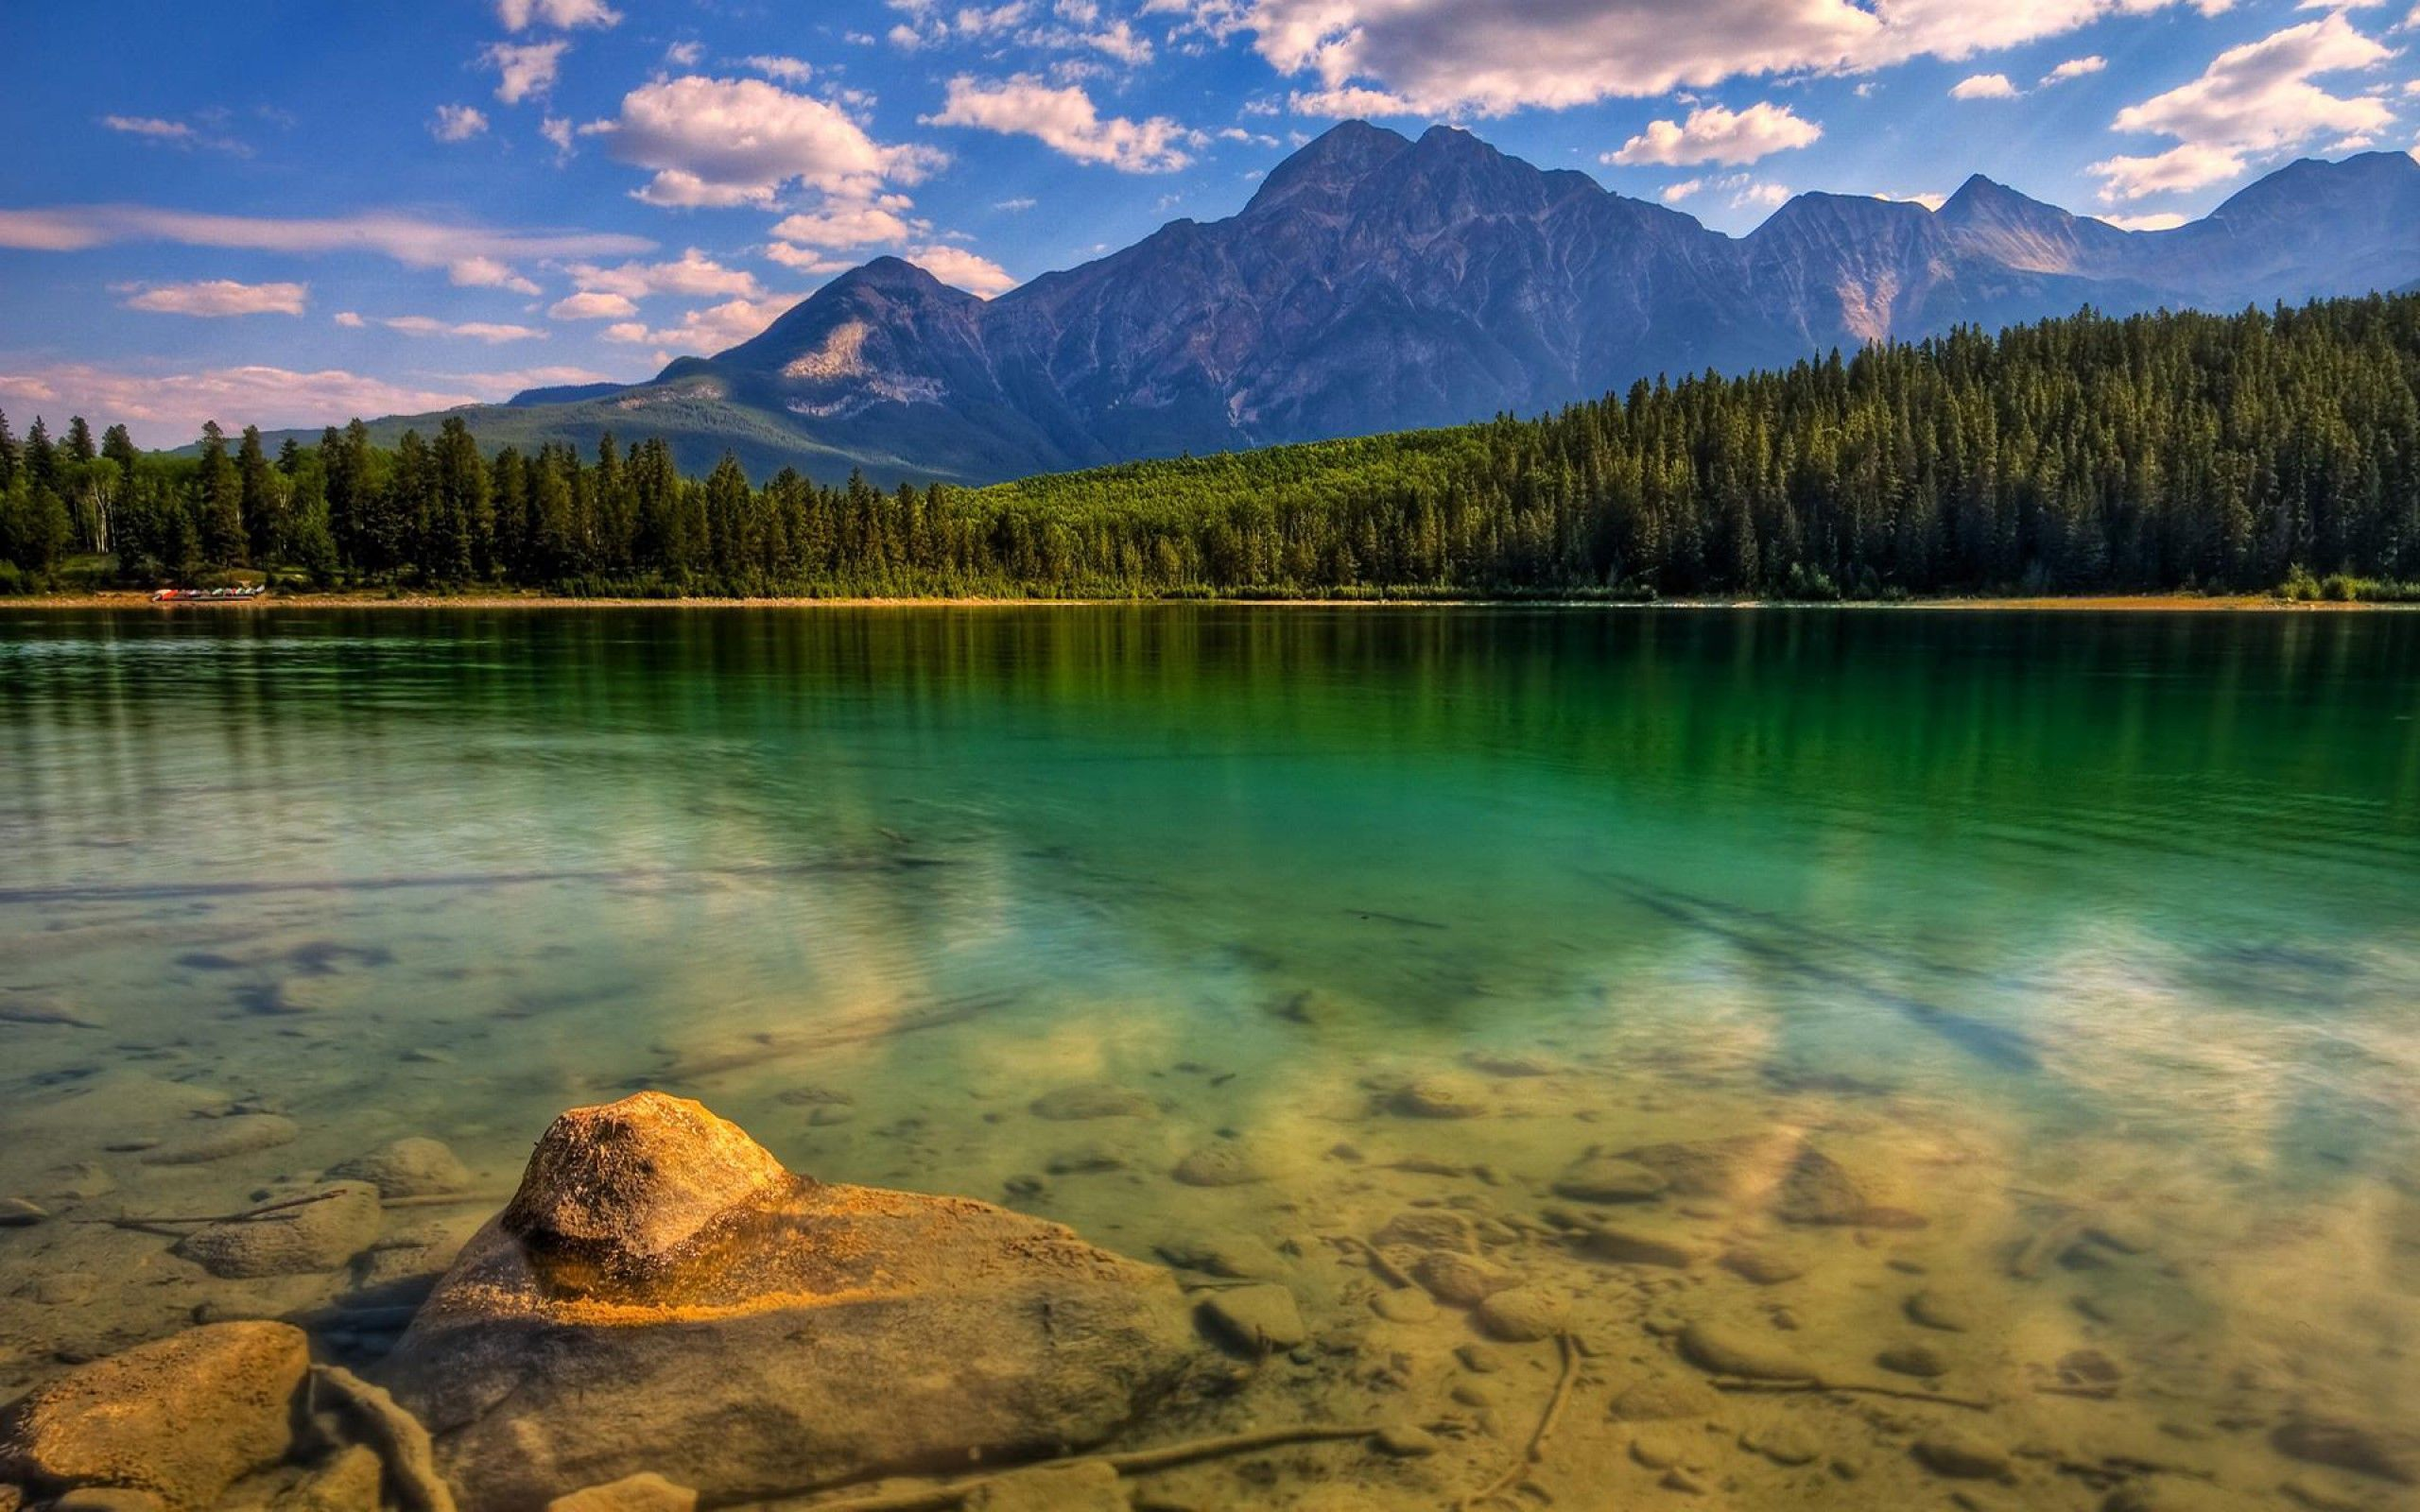 River With Mountain Hd Wallpaper: 15 Beautiful HD Wallpapers Of Mountains And Rivers